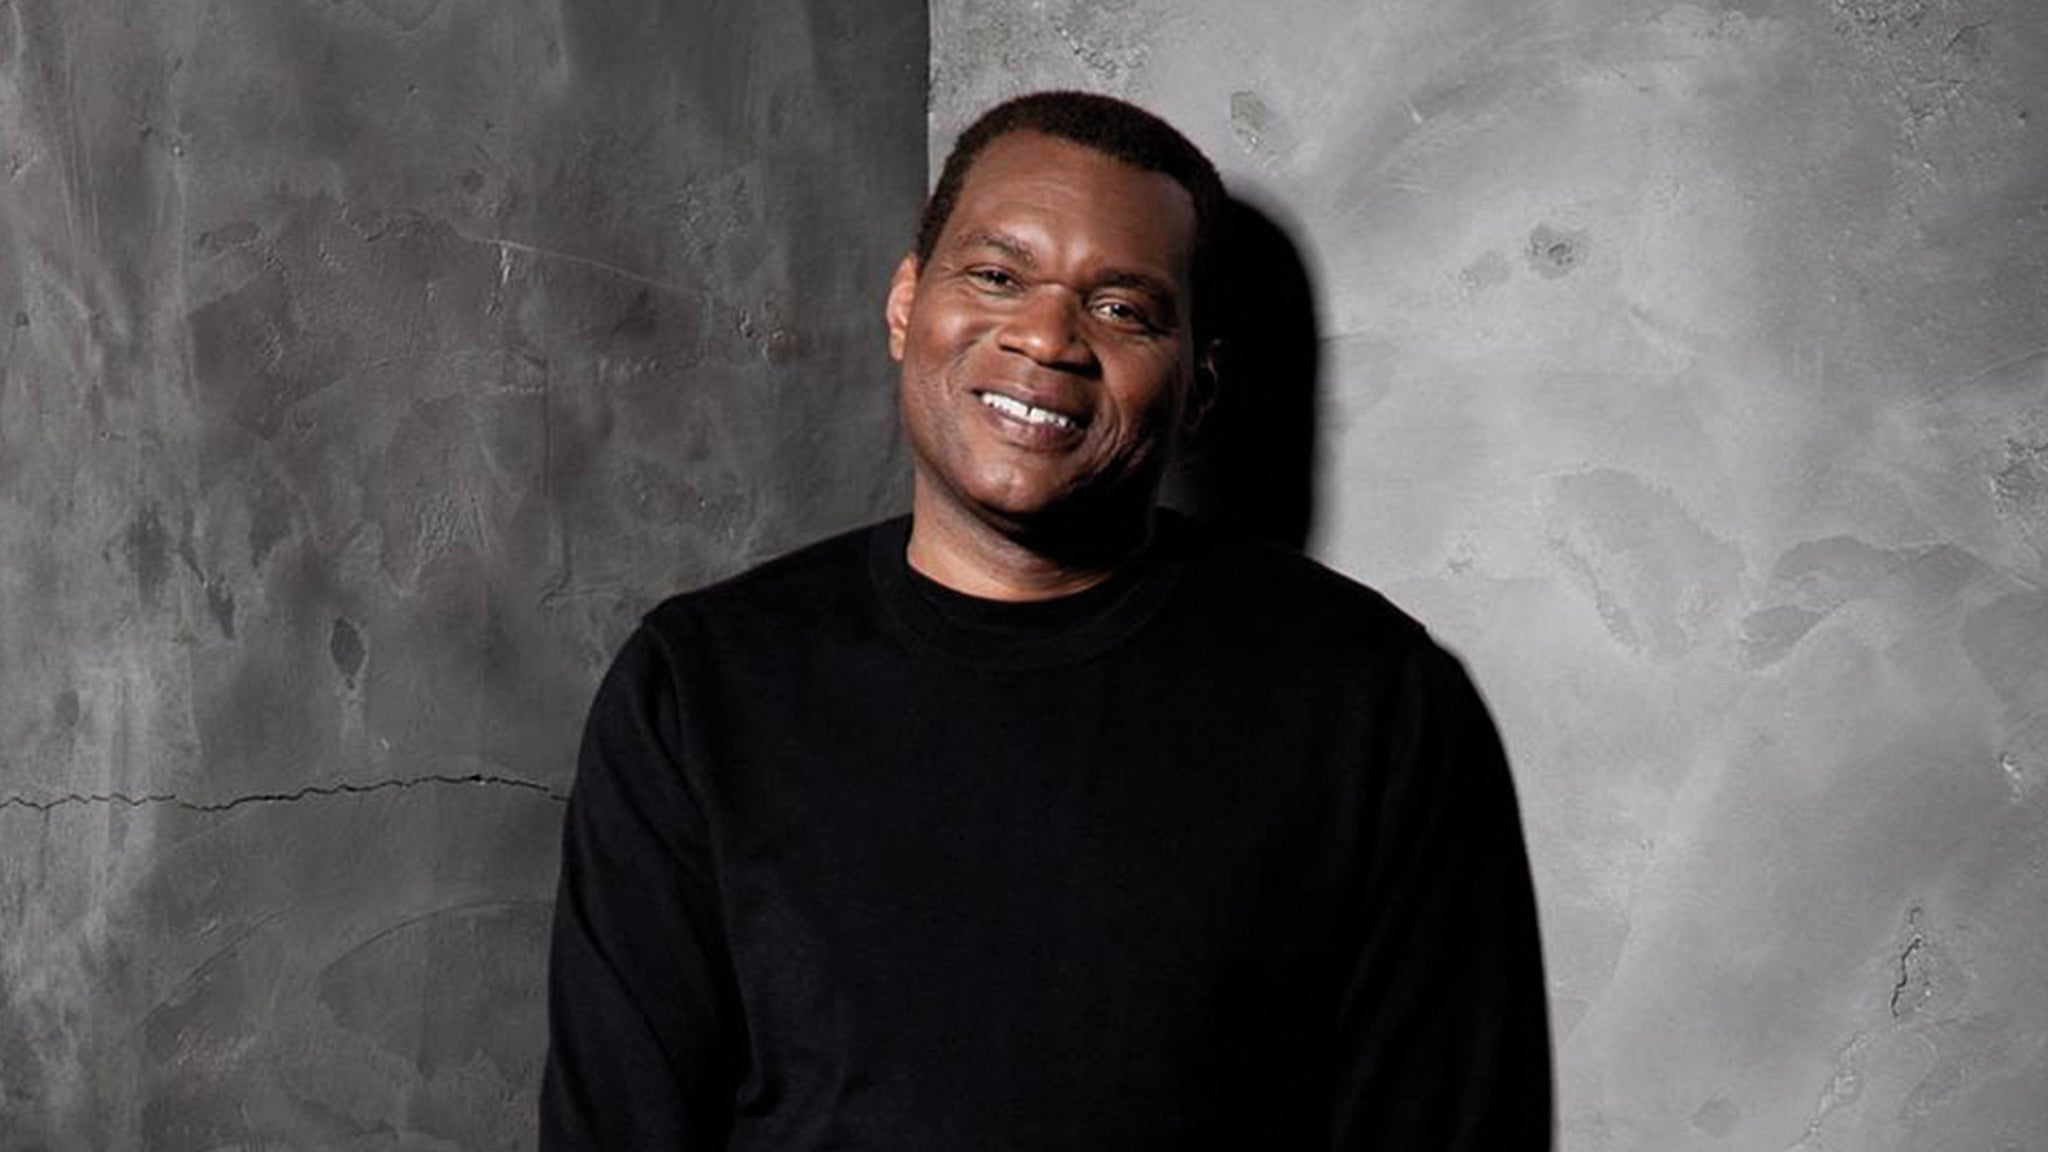 Robert Cray at Fox Performing Arts Center